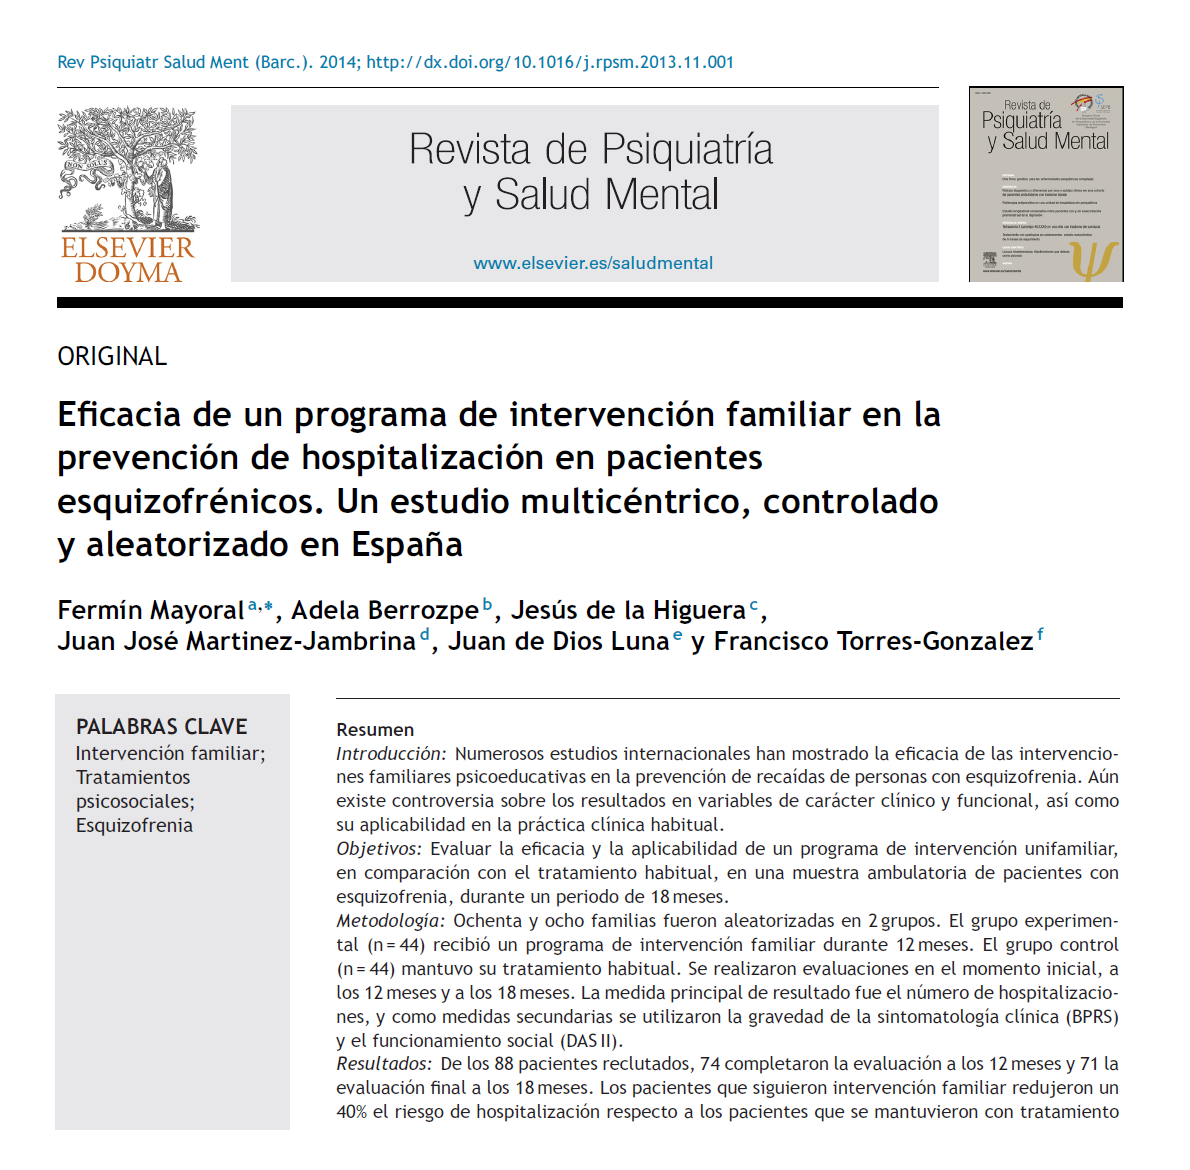 http://apps.elsevier.es/watermark/ctl_servlet?_f=10&pident_articulo=0&pident_usuario=0&pcontactid=&pident_revista=286&ty=0&accion=L&origen=zonadelectura&web=zl.elsevier.es&lan=es&fichero=S1888-9891(13)00124-9.pdf&eop=1&early=si